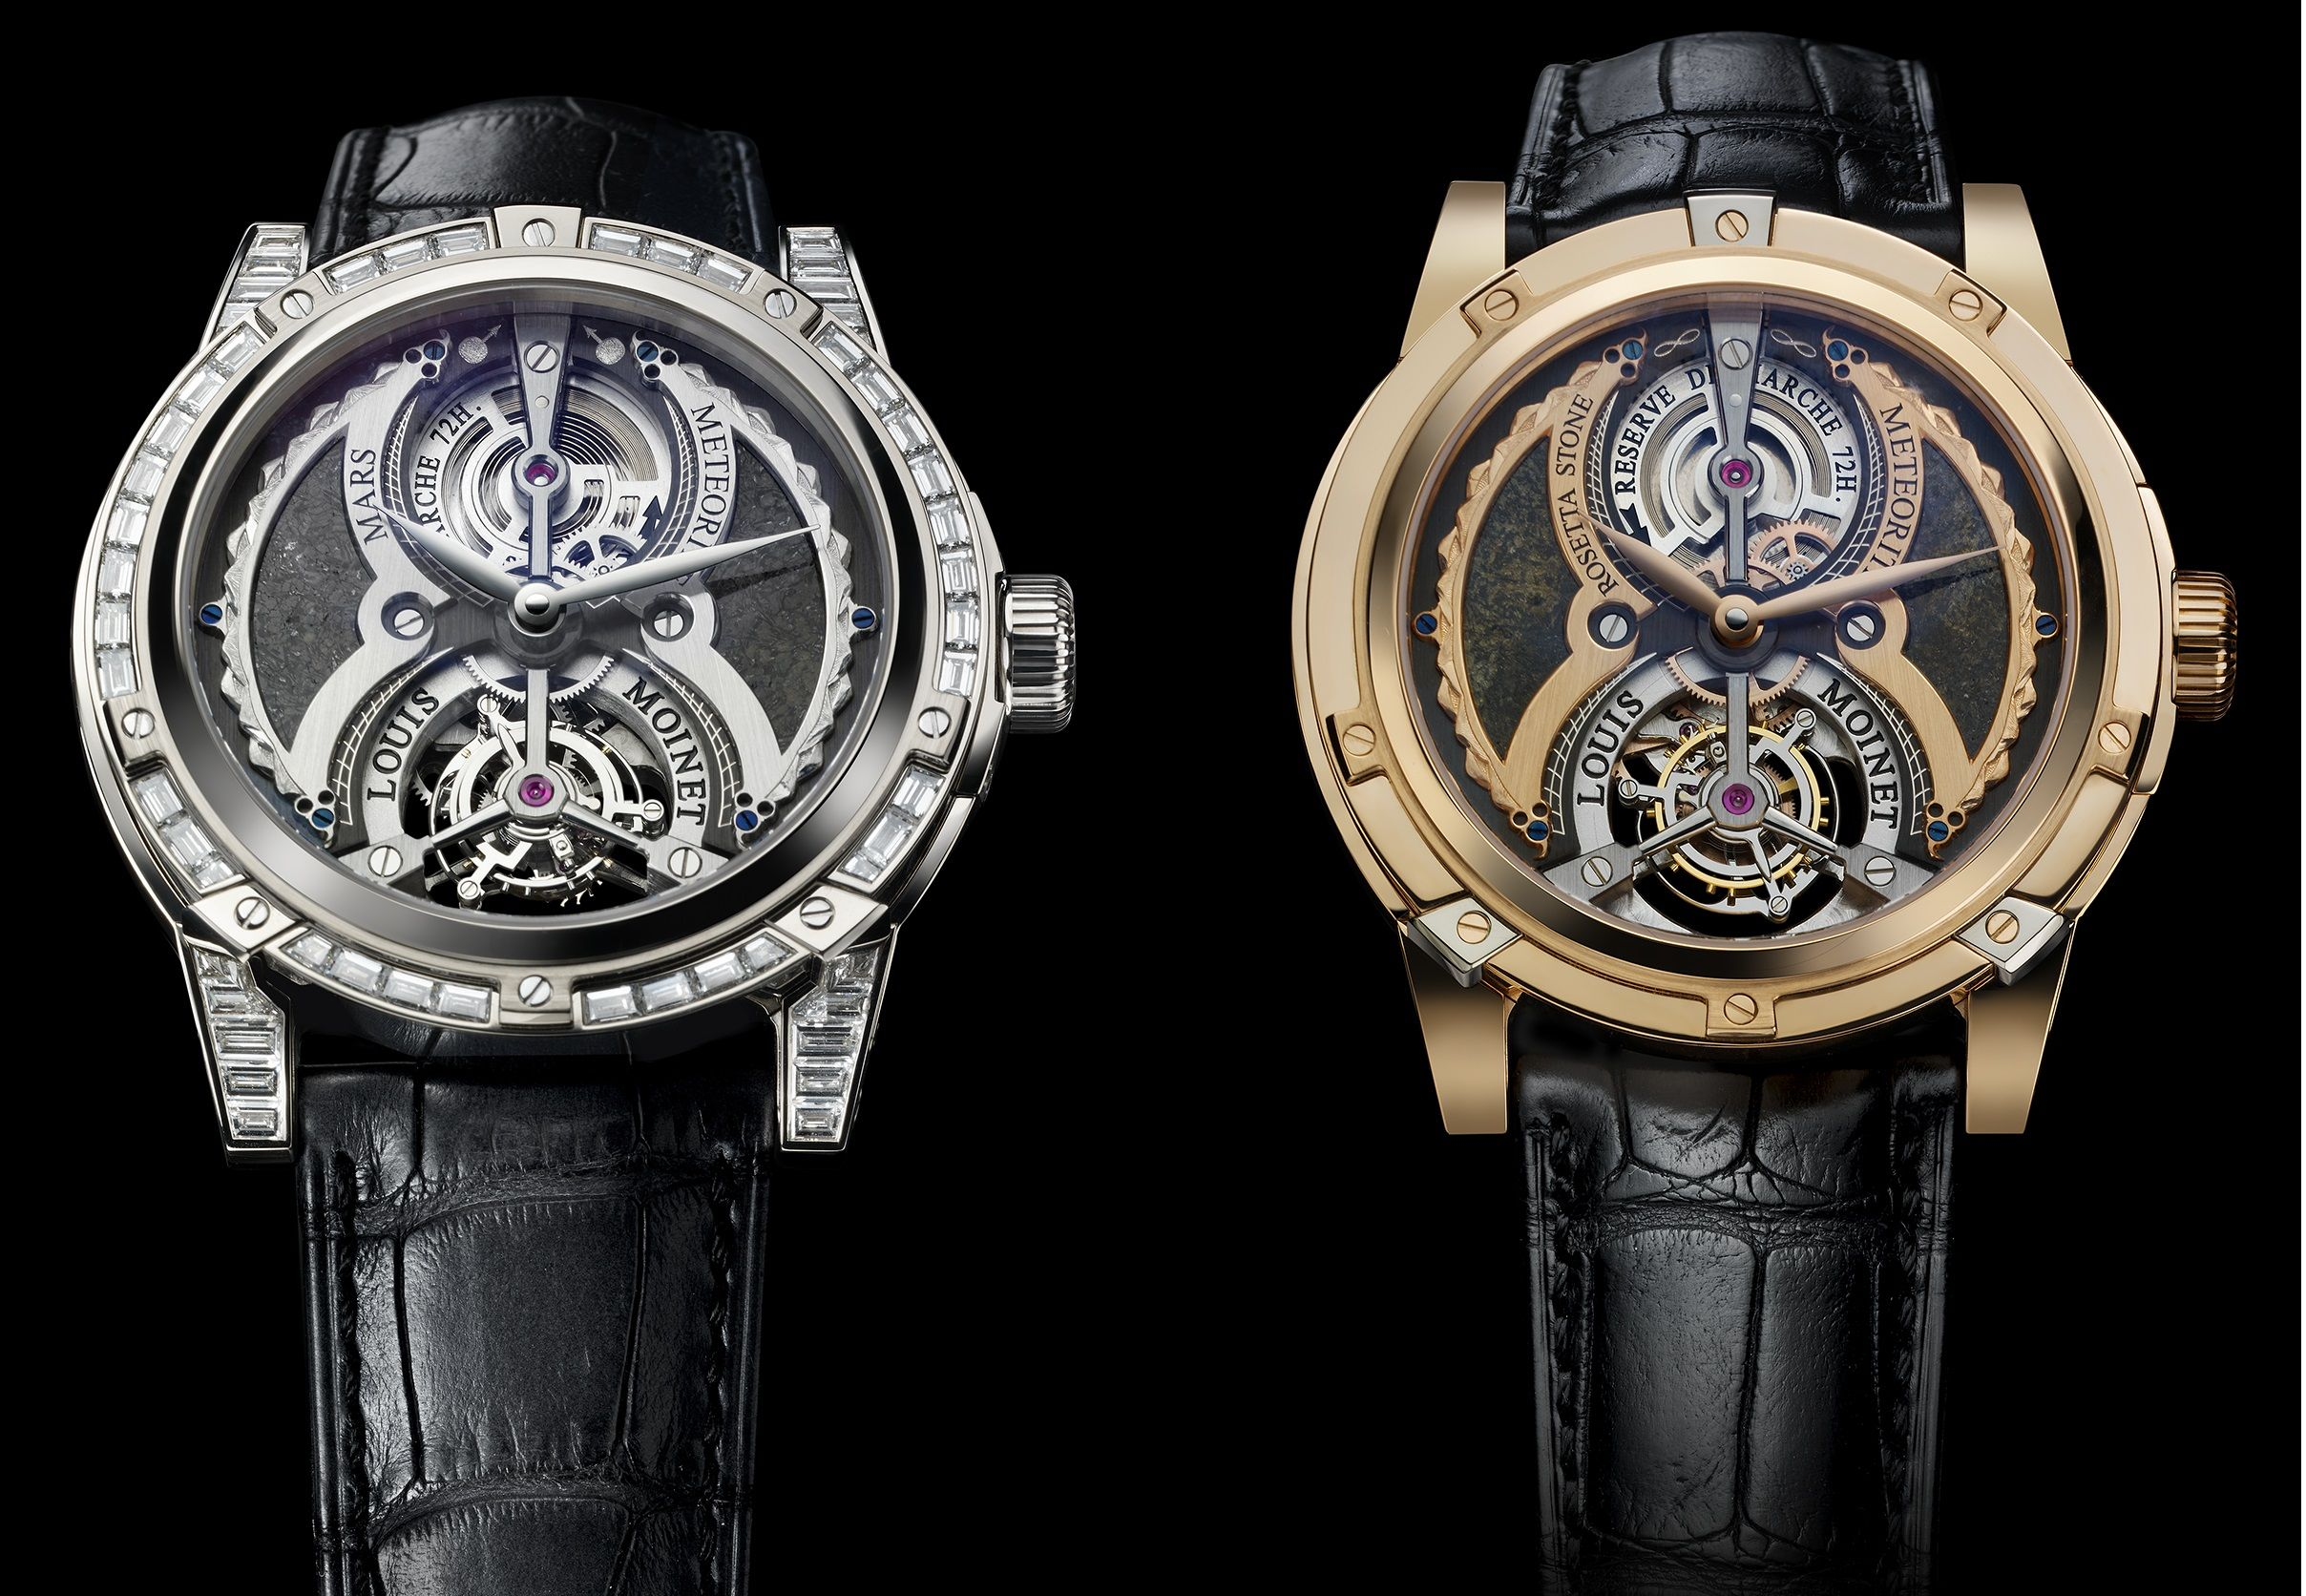 Top 10 most expensive watches over 2 million louis moinet meteoris watch collection rich and for Louis moinet watch